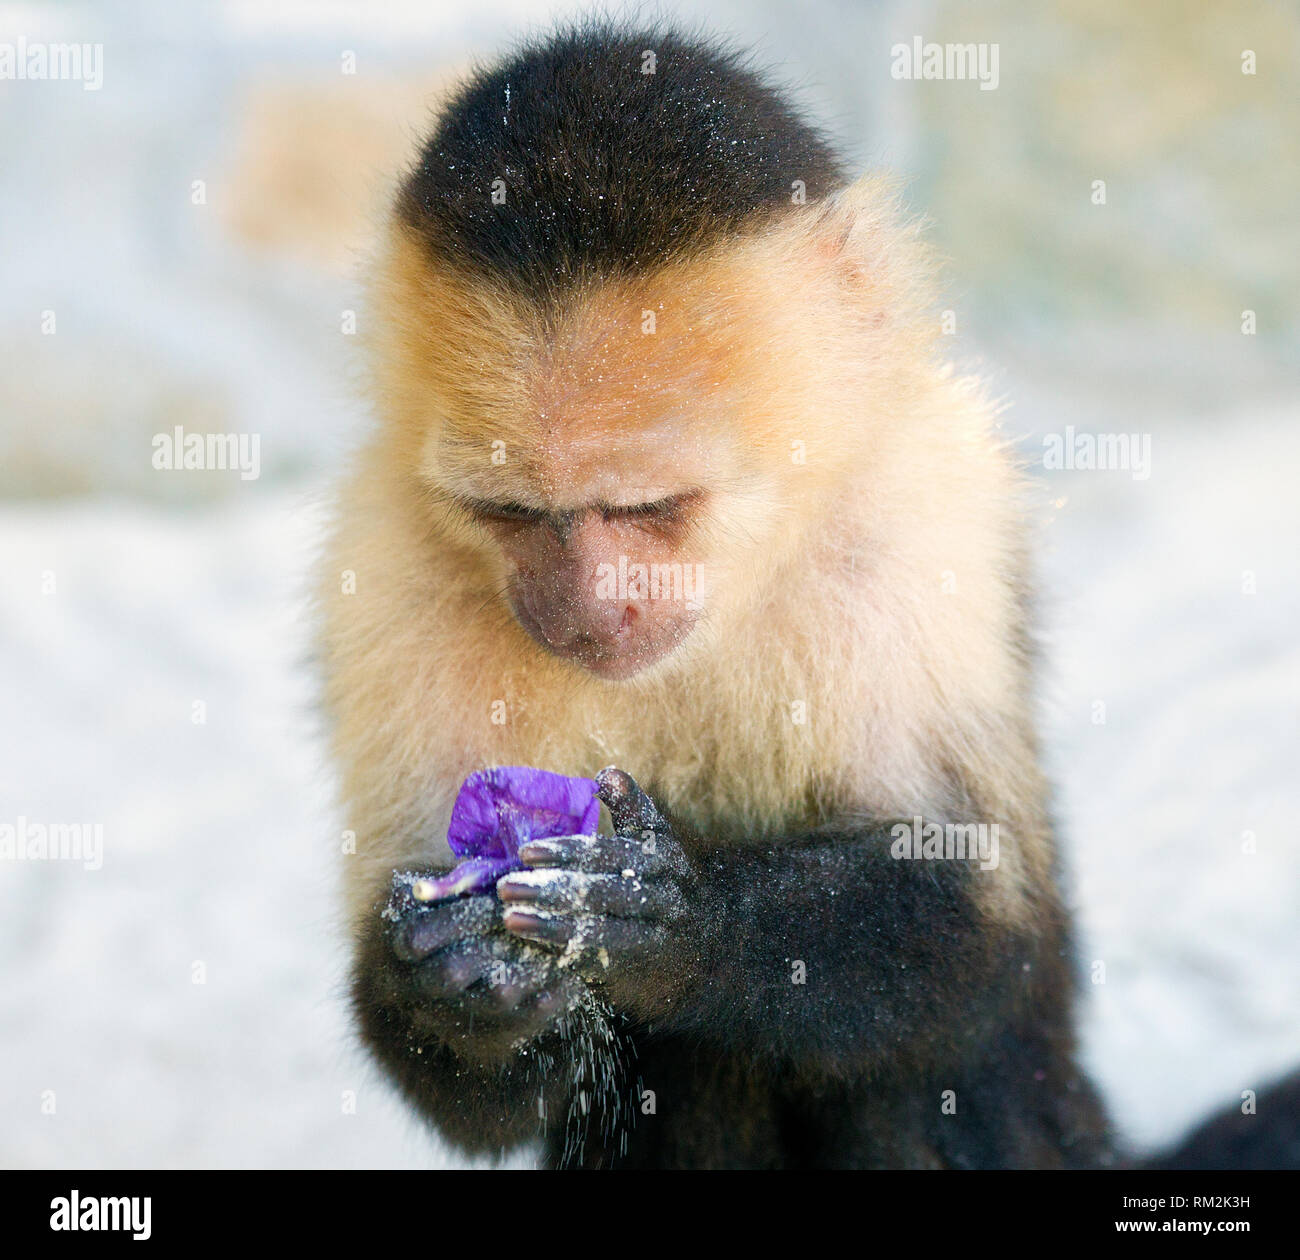 Capuchin Monkey Holding and Contemplating a Purple Flower - Stock Image